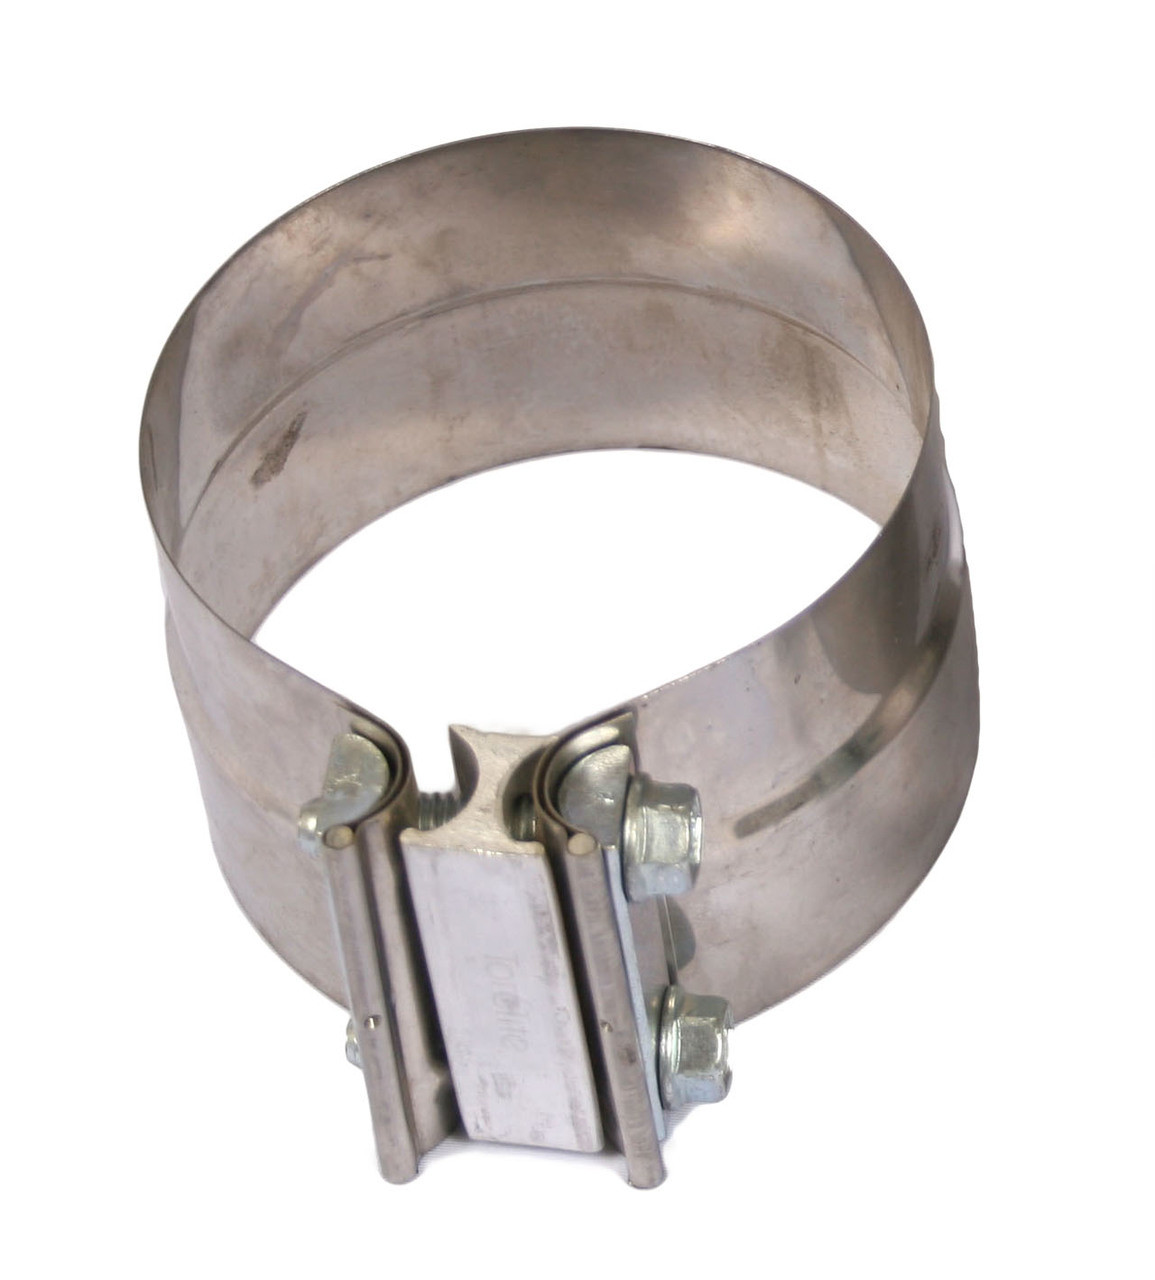 "Stainless Steel Band Clamp, 3.5"", SBC35"